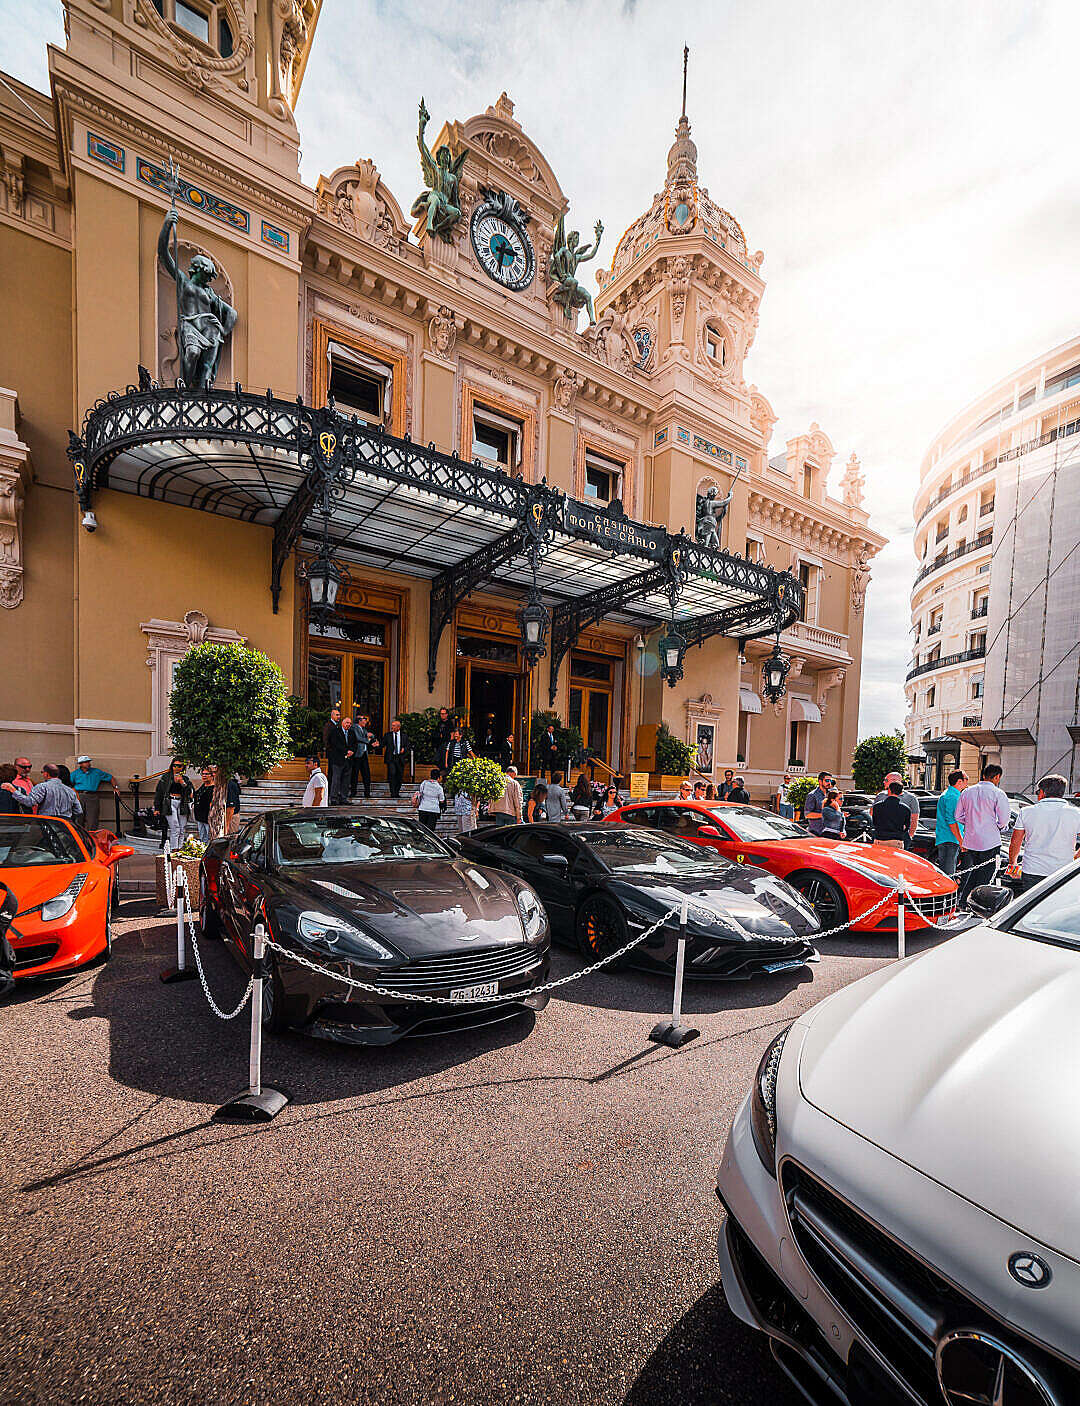 Download Luxury Cars and Tourists in front of Monaco Casino FREE Stock Photo